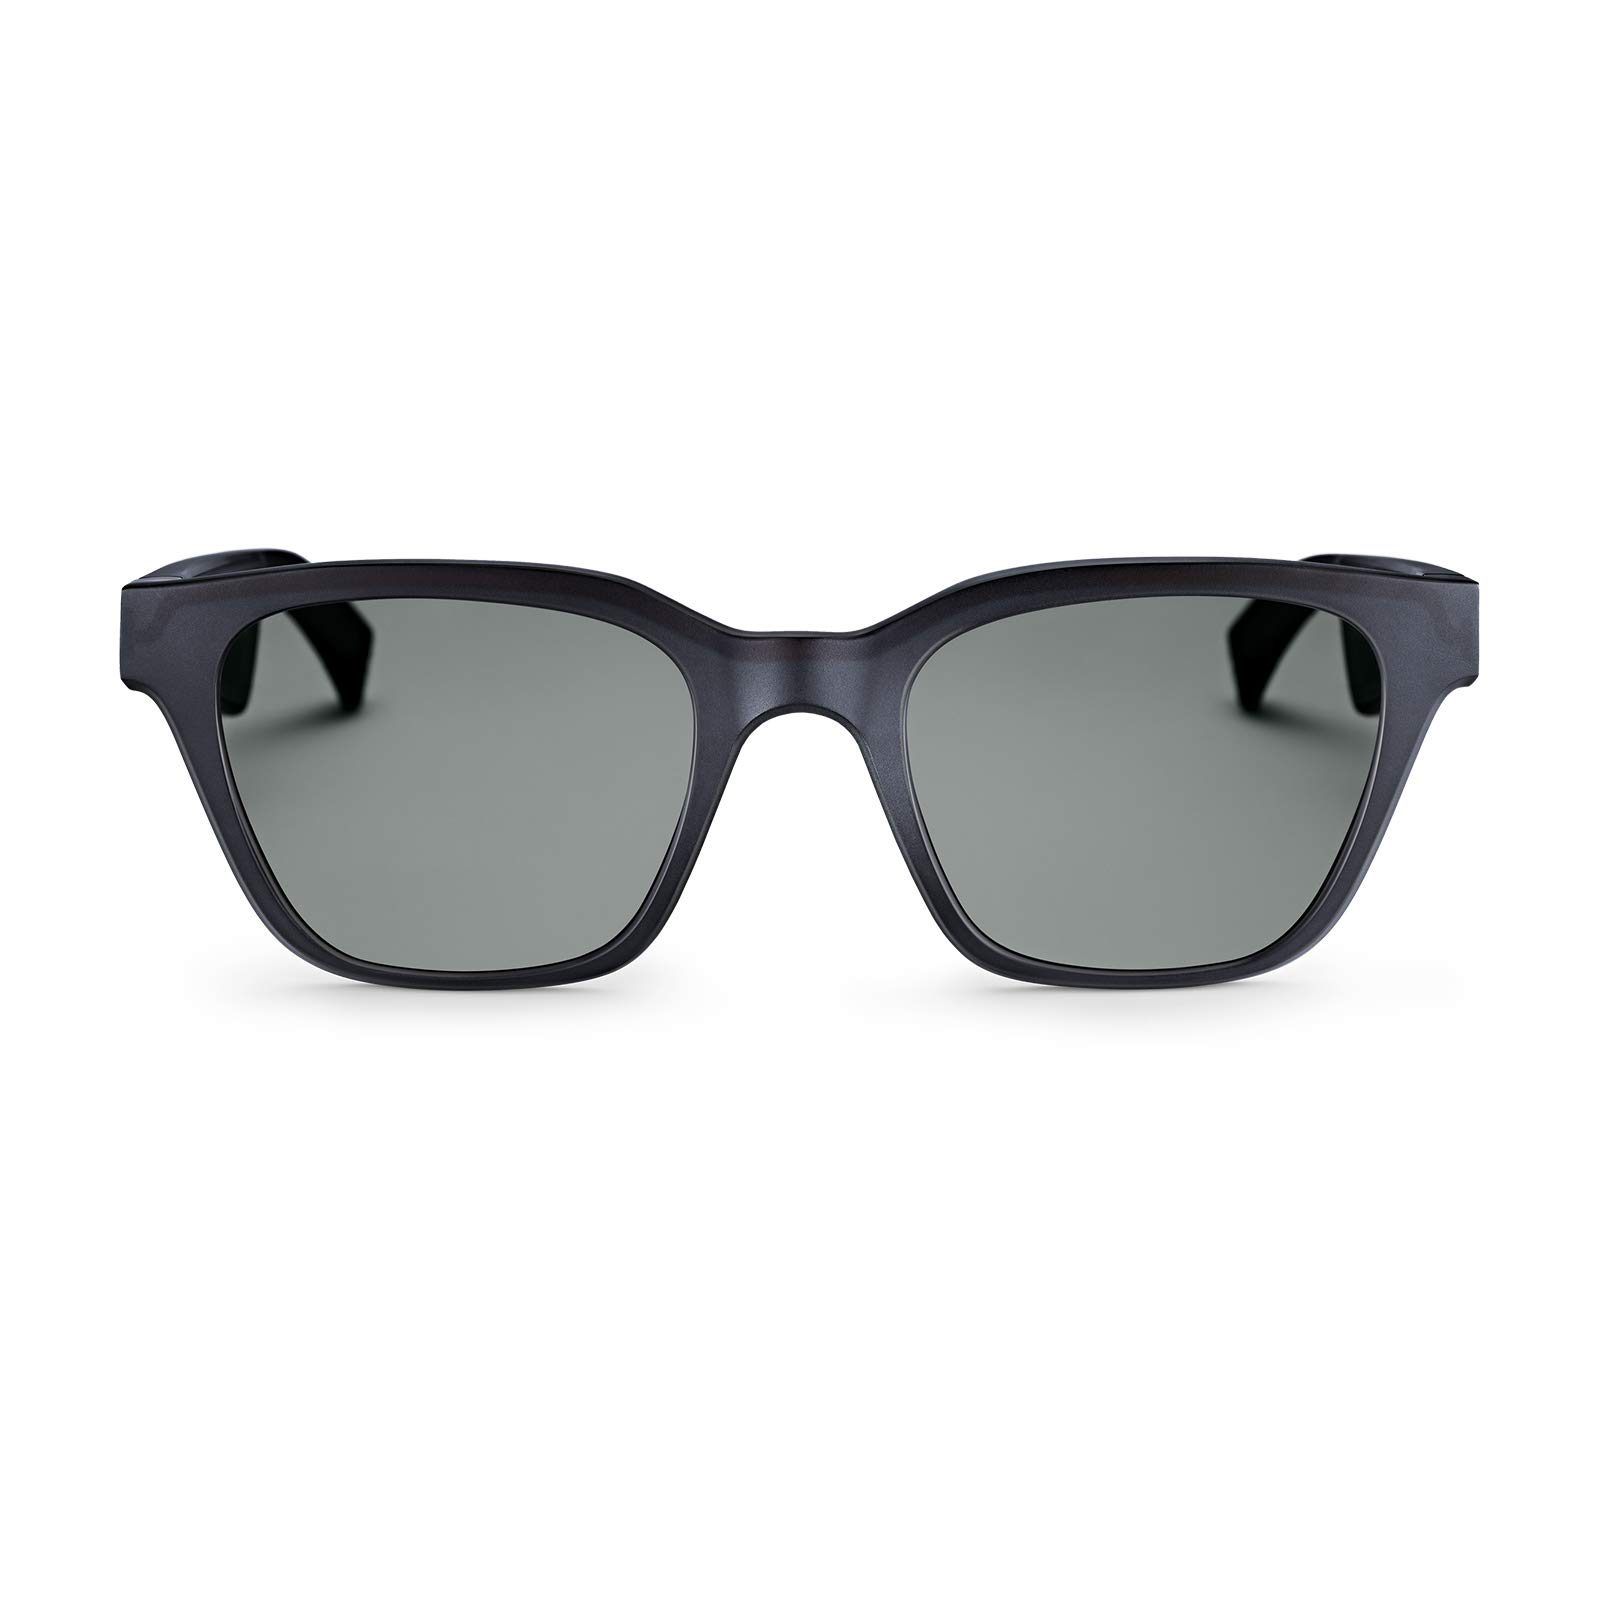 Bose Frames Audio Sunglasses, Alto, Black - with Bluetooth Connectivity by Bose (Image #1)